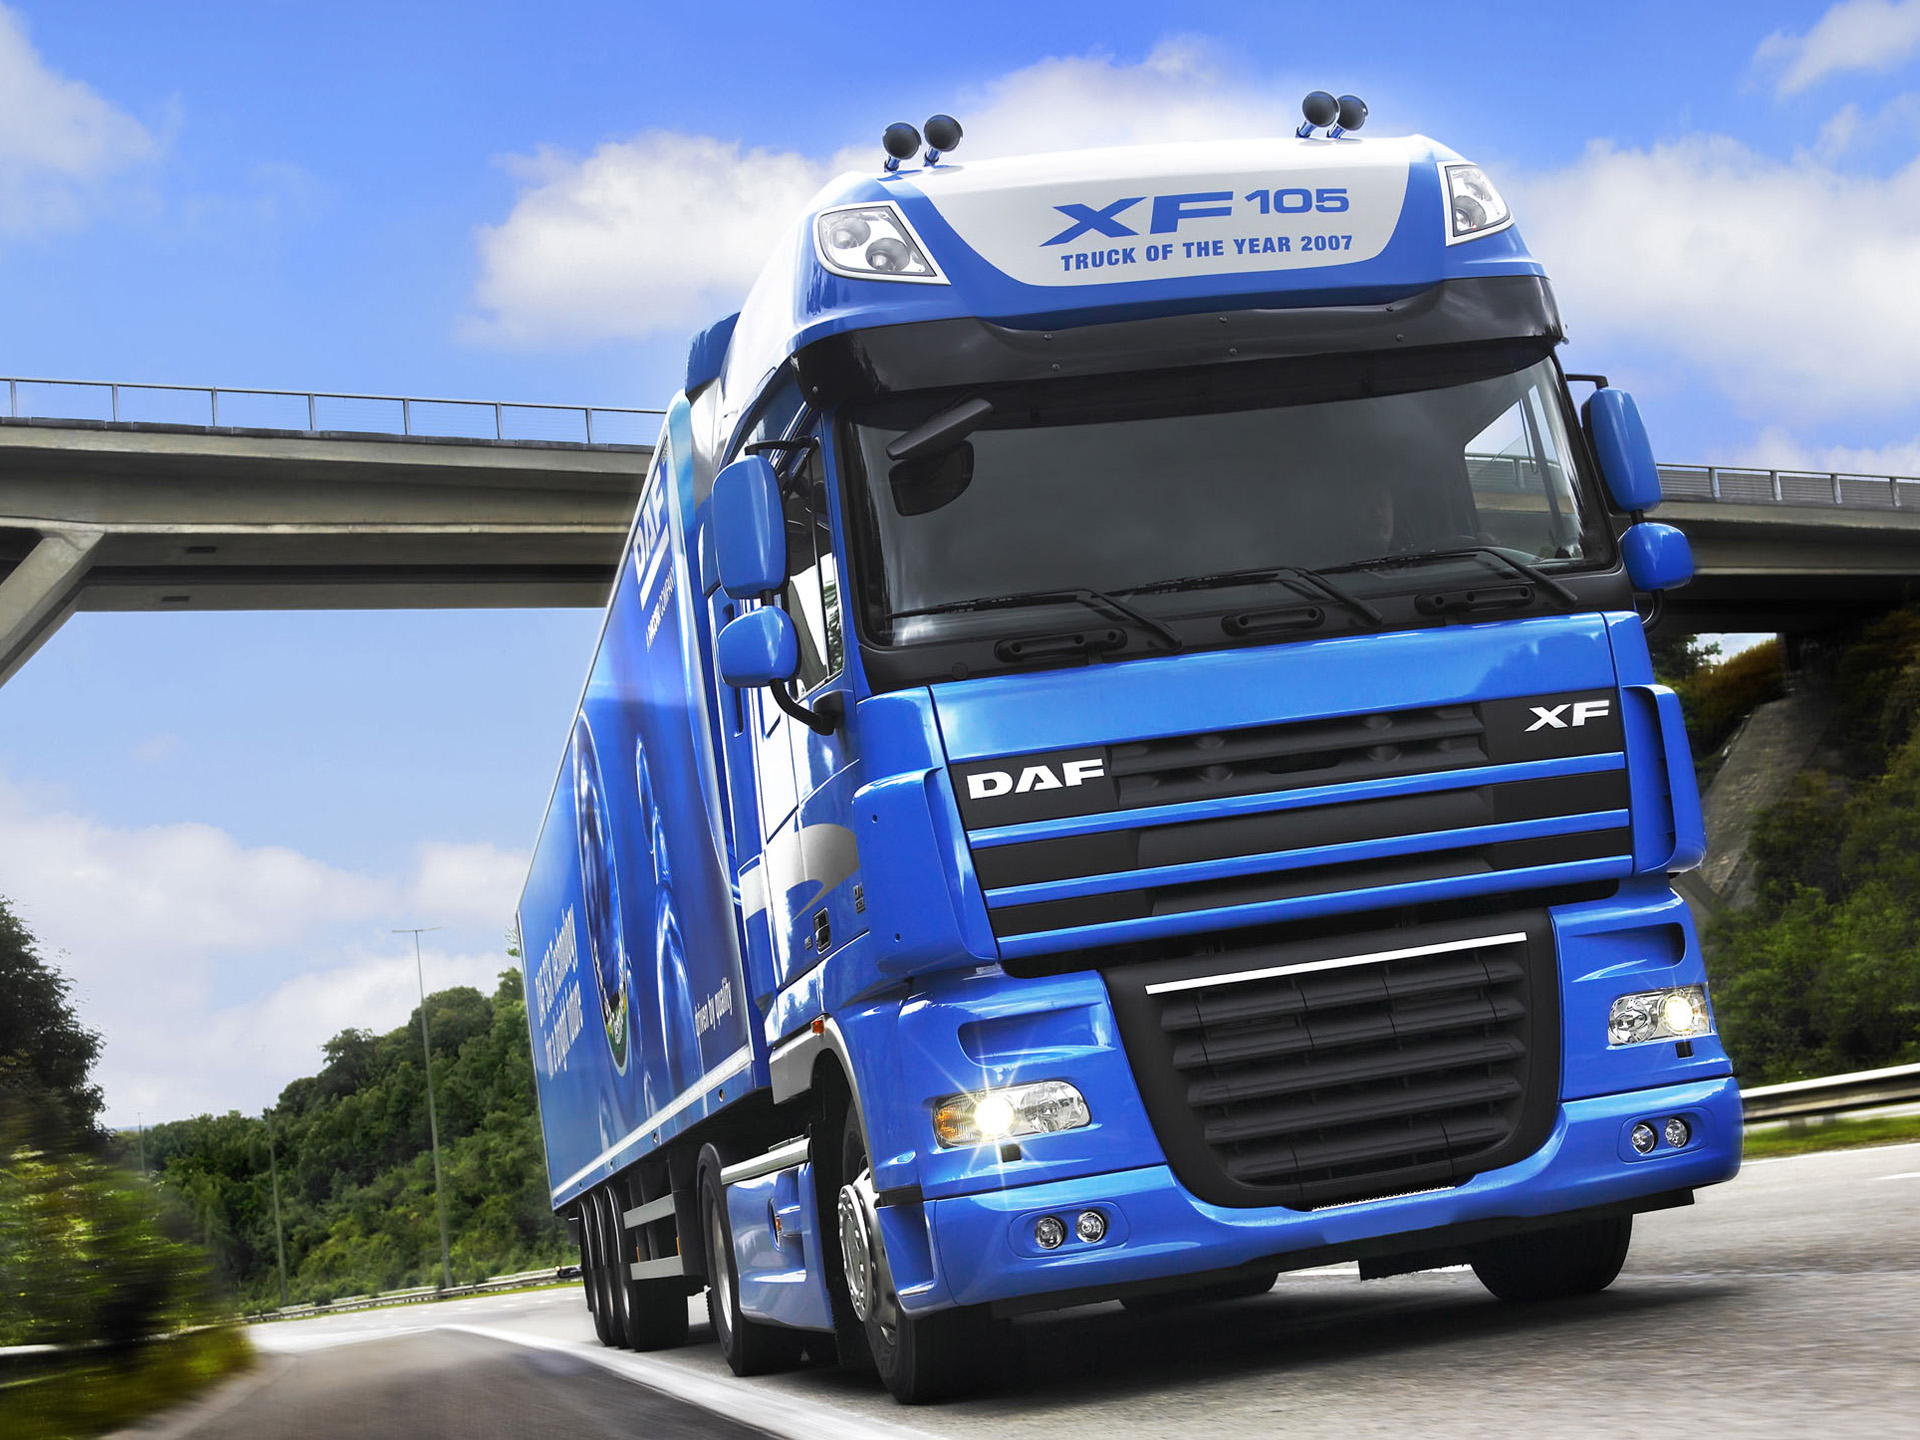 DAF XF 105 photos - PhotoGallery with 19 pics| CarsBase.com